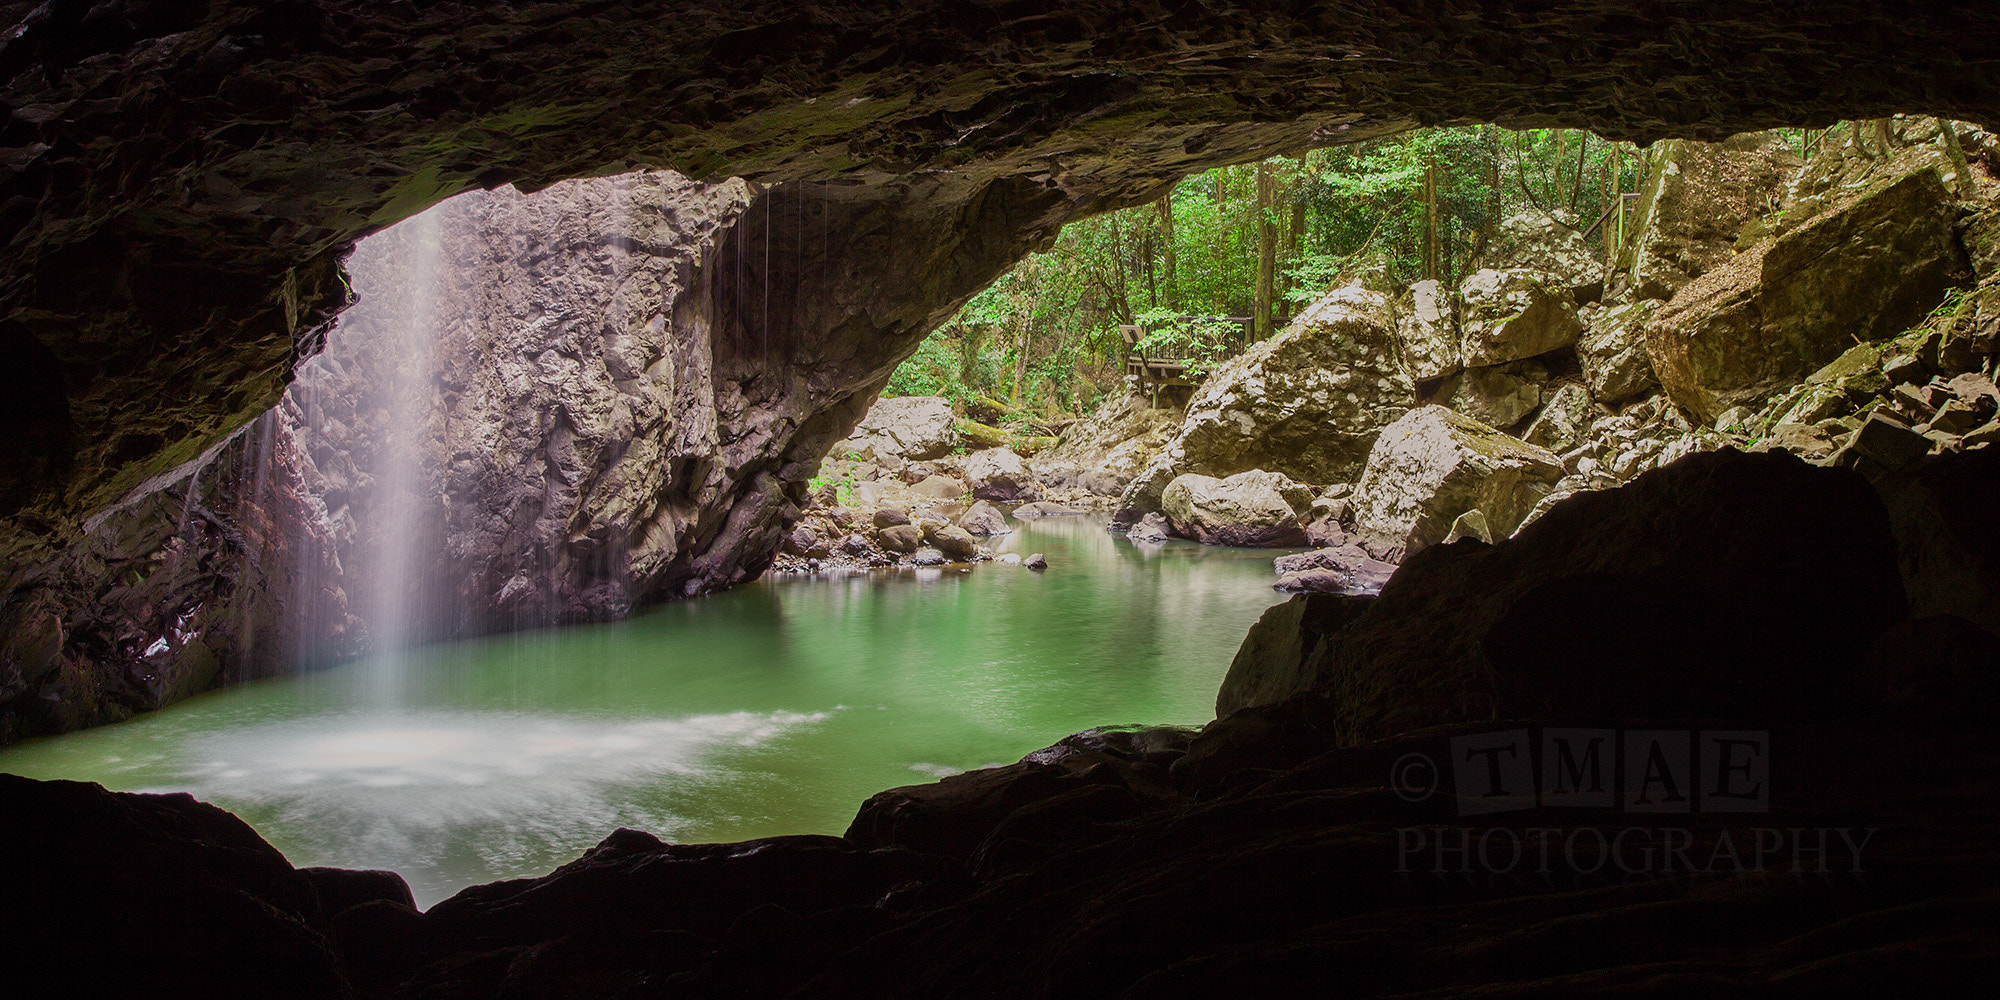 Photograph Beauty at Natural Bridge by Tim McGuire on 500px